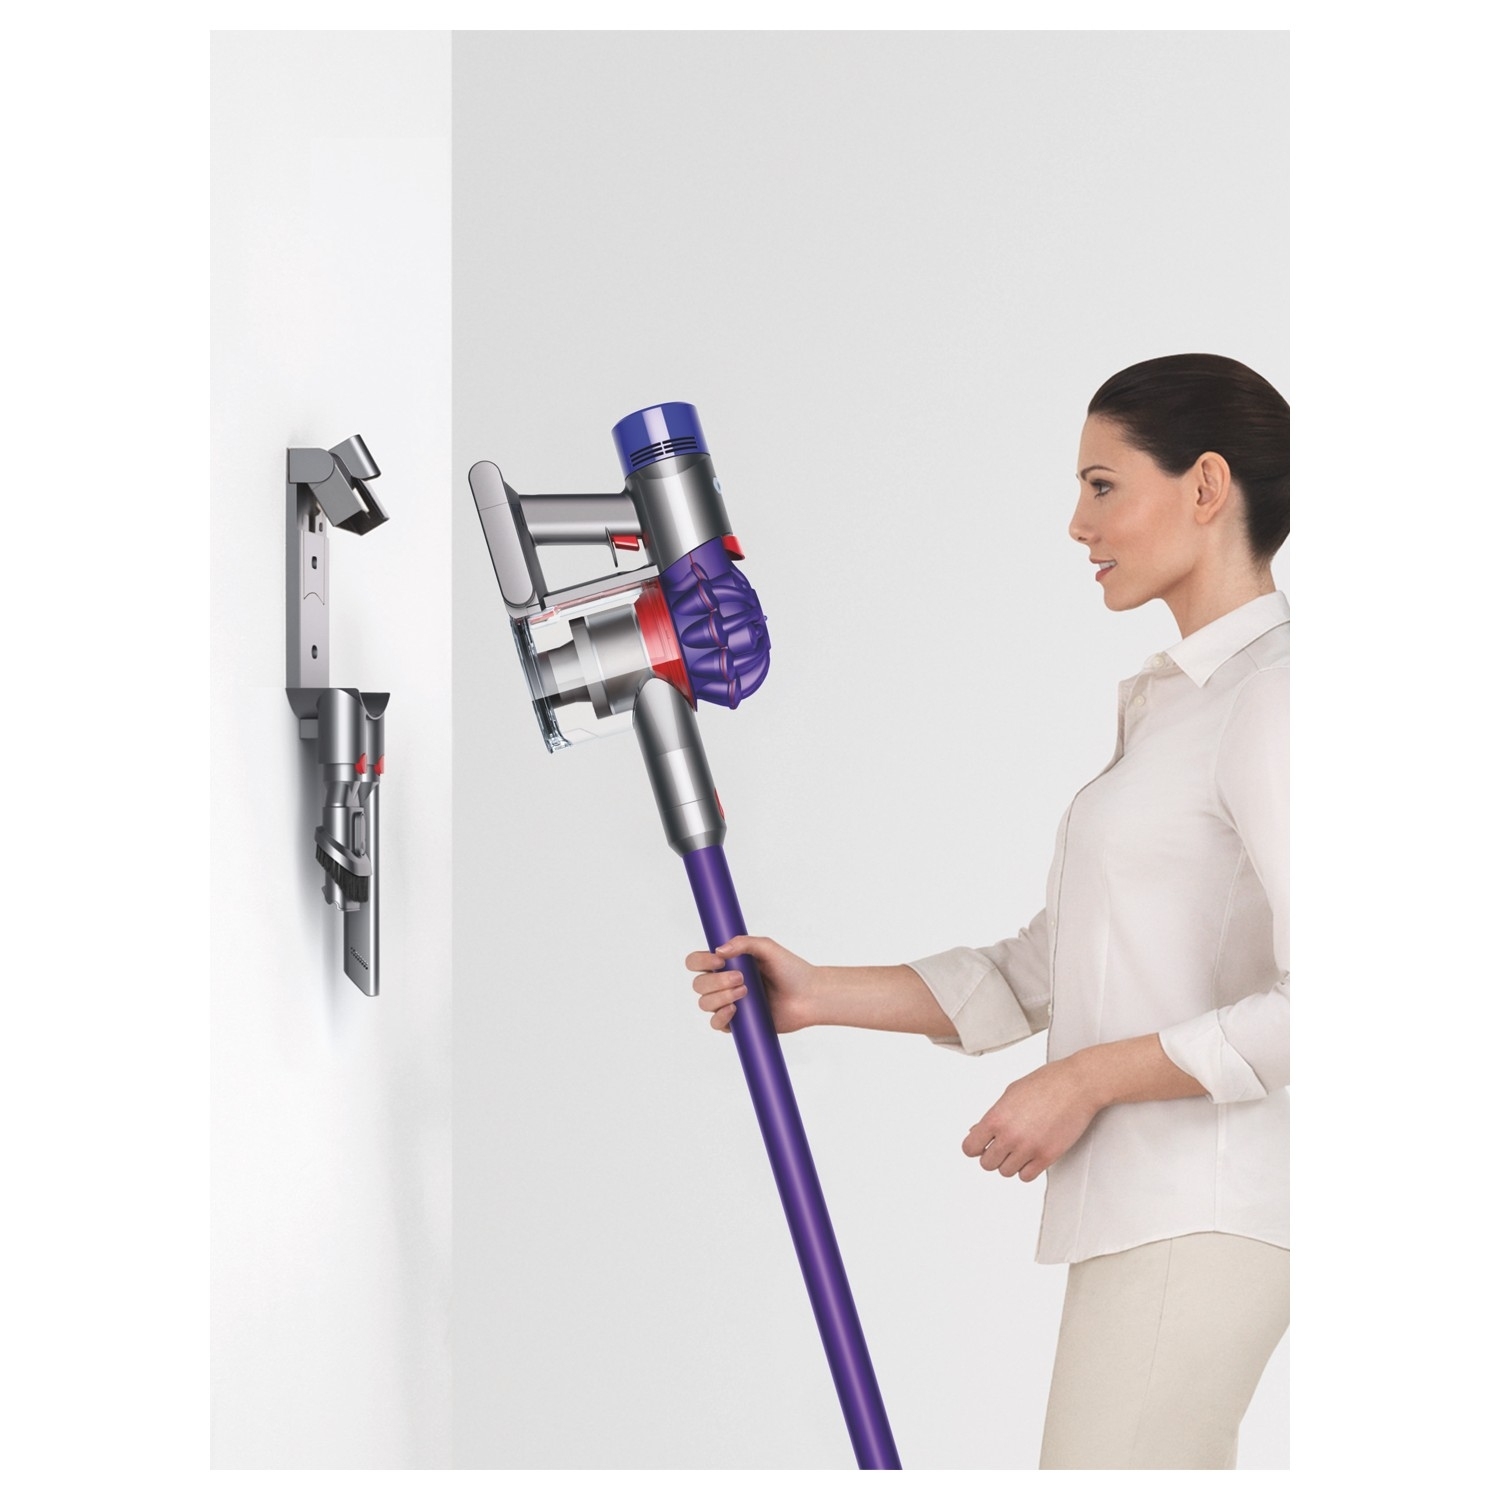 Dyson V7ANIMALPLUS Cordless Vacuum Cleaner - 30 Minute Run Time - 4